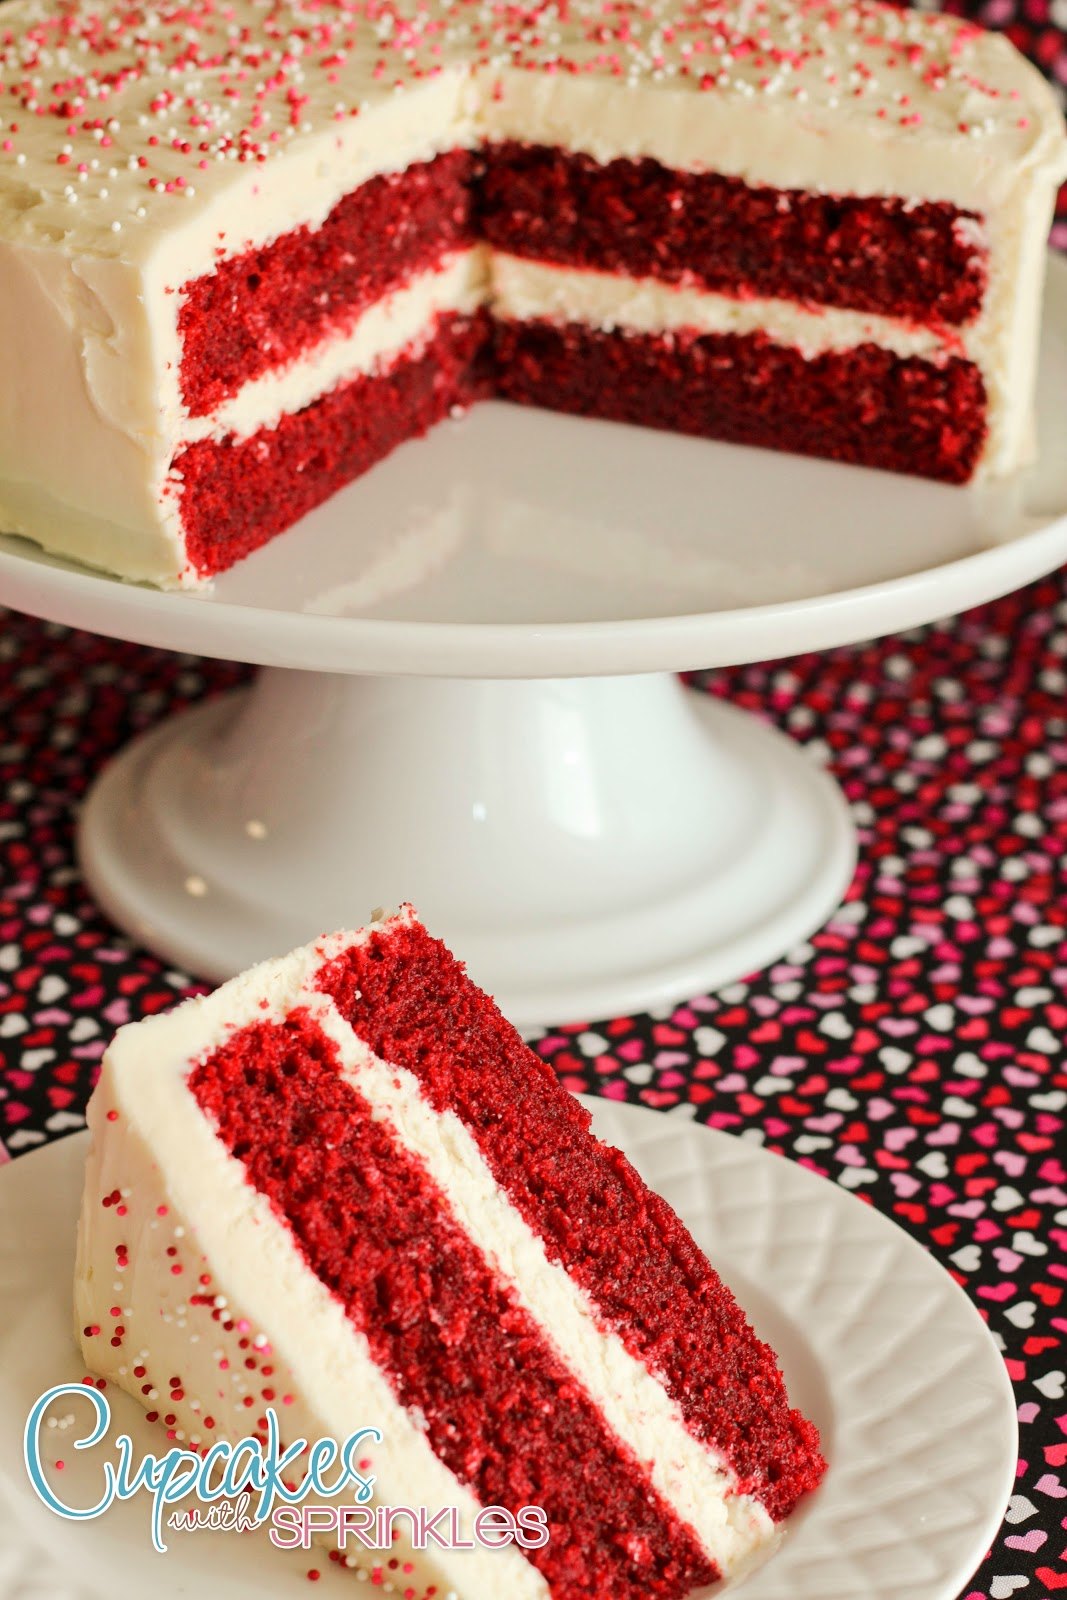 Red Velvet Cake Recipe with cream cheese frosting